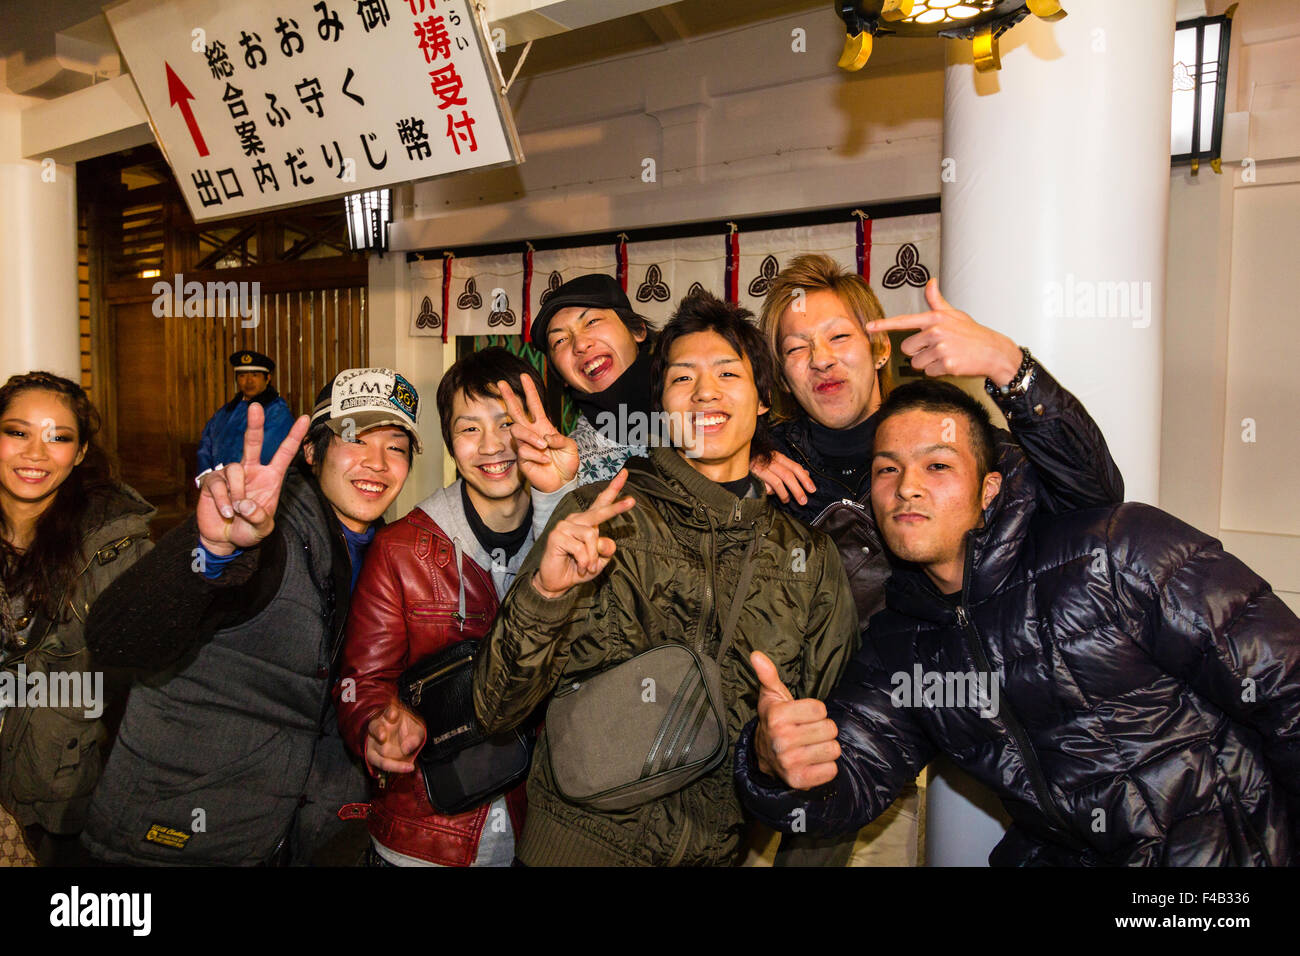 Japan, Nishinomiya Shinto shrine, new year, midnight. Group of people in front of viewer smiling and giving the - Stock Image